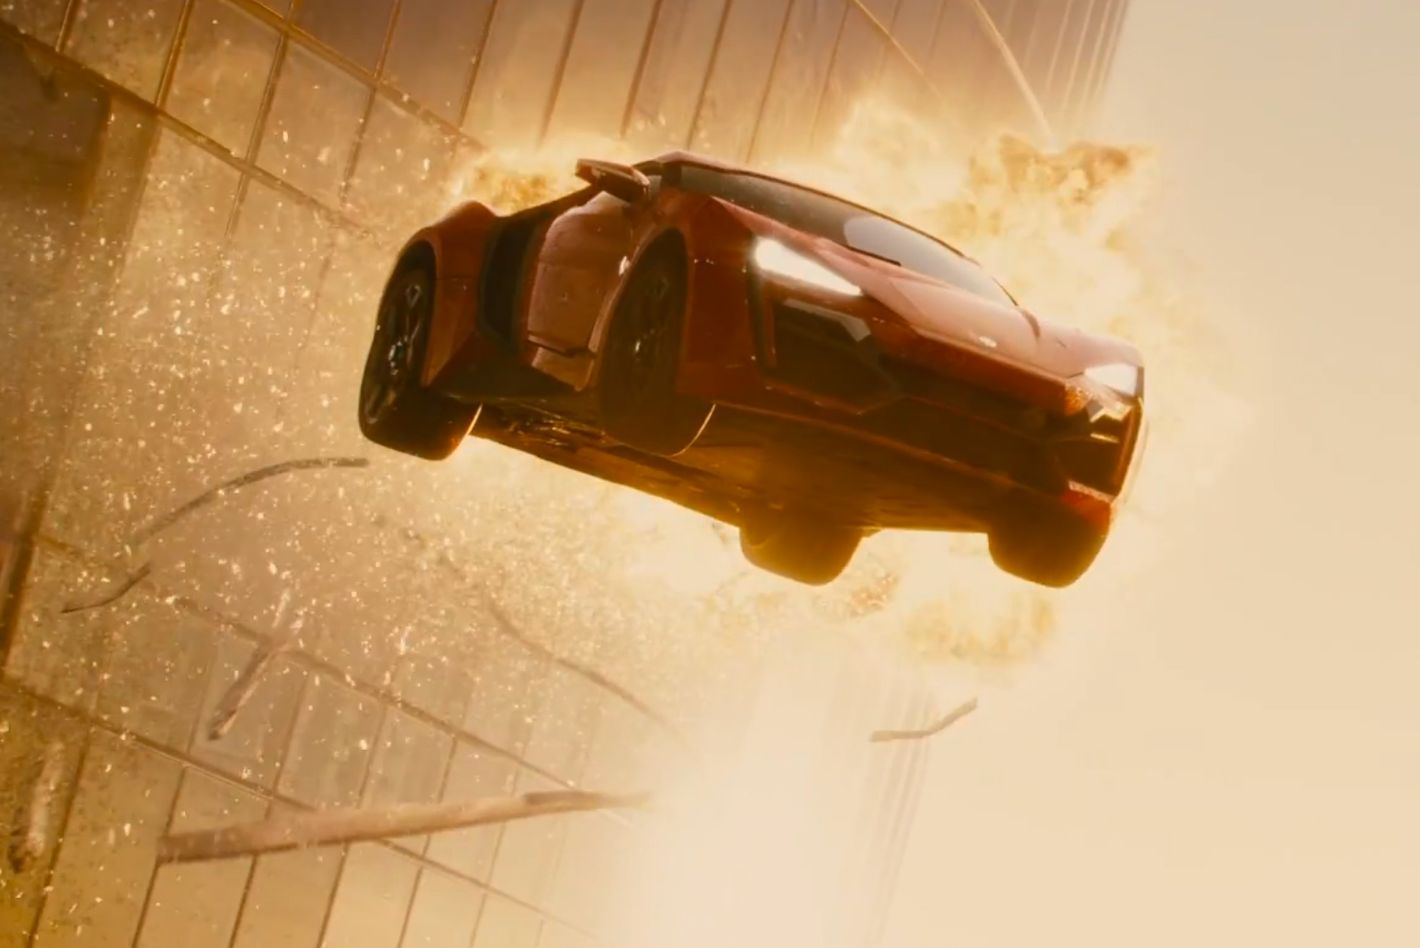 Could Furious 7's Double-Skyscraper Jump Really Happen? We Asked a Physicist